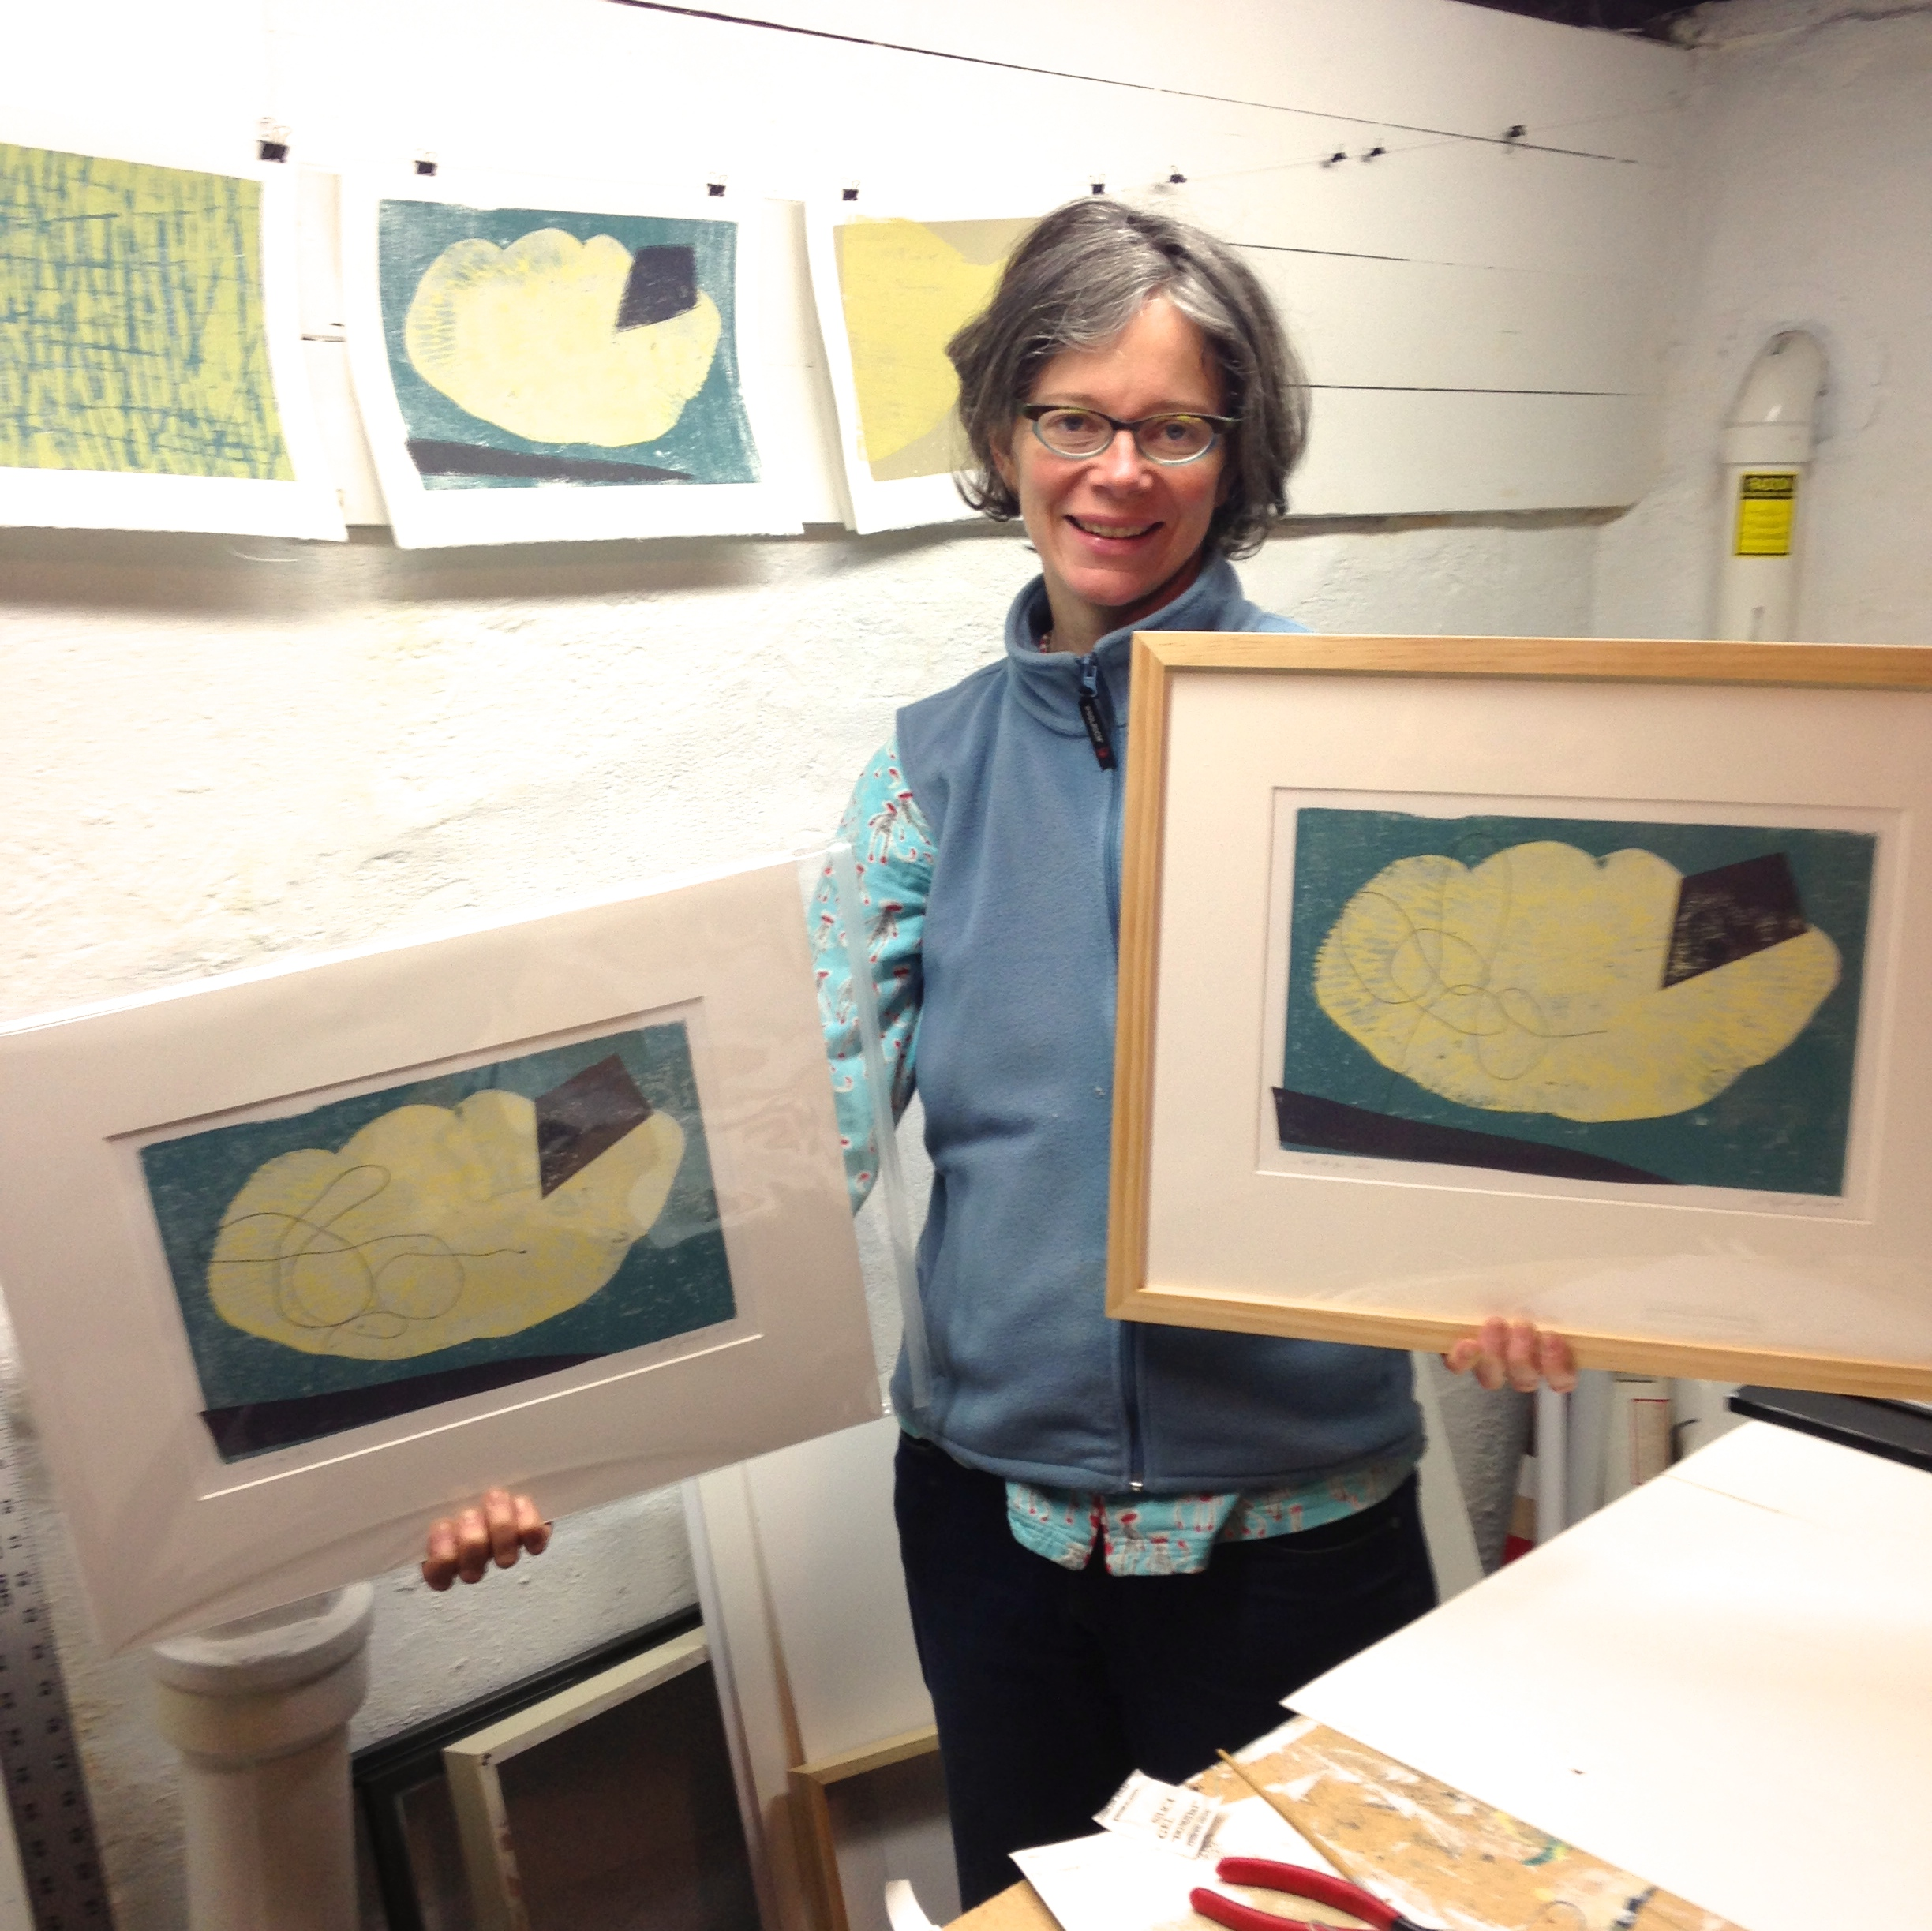 The finished matted and framed block prints!